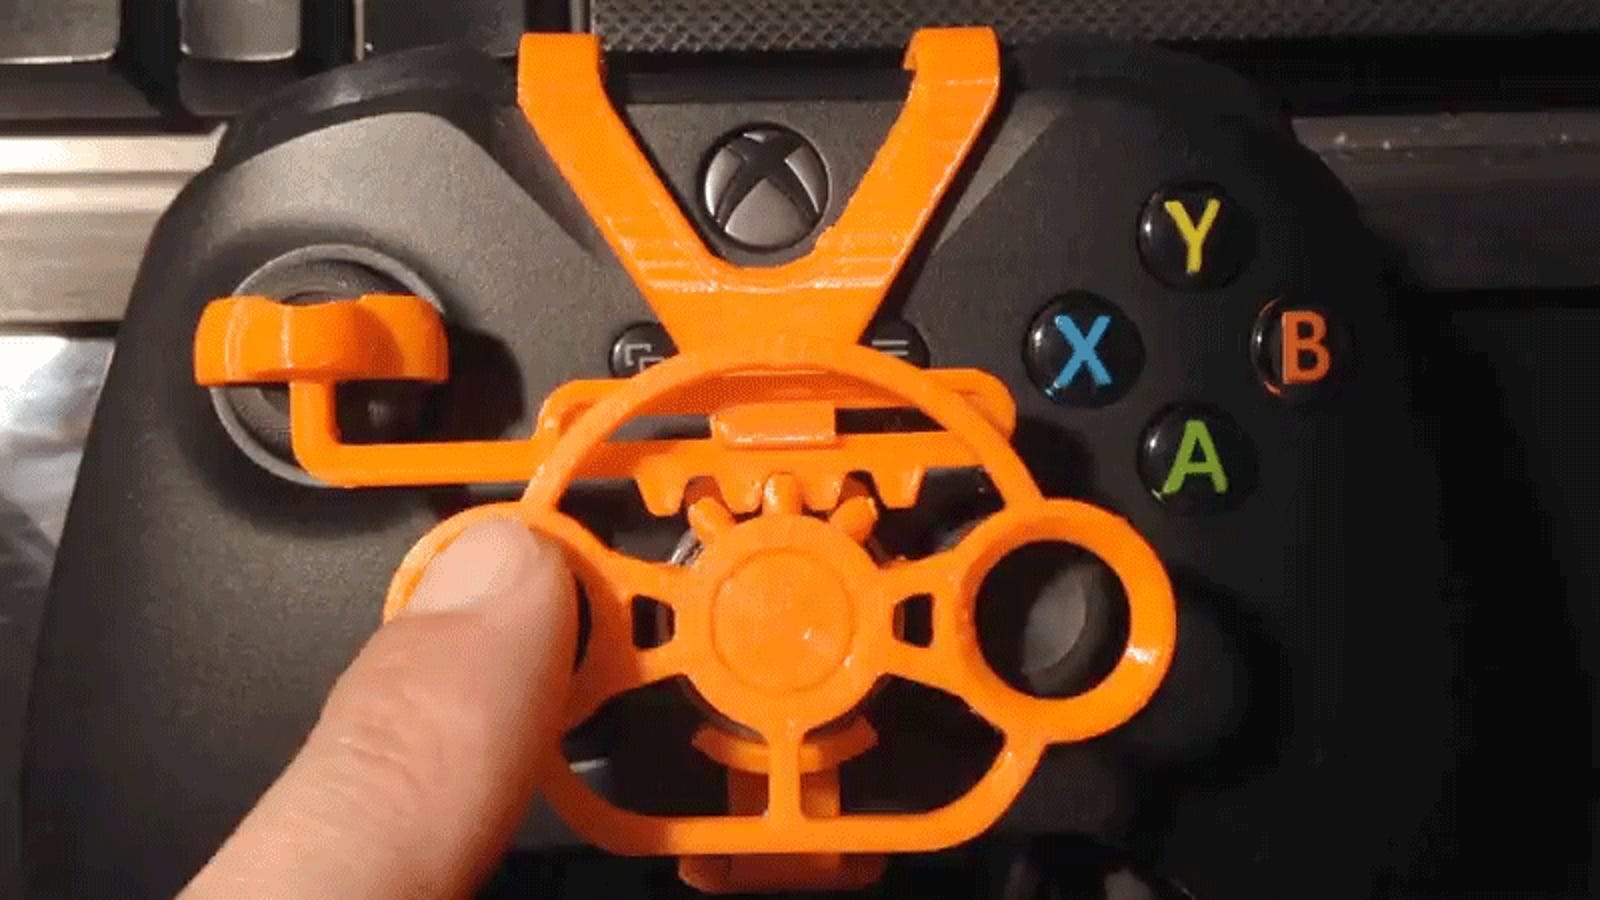 Diy Xbox One Racing Wheel Made On A Budget With 3d Printing